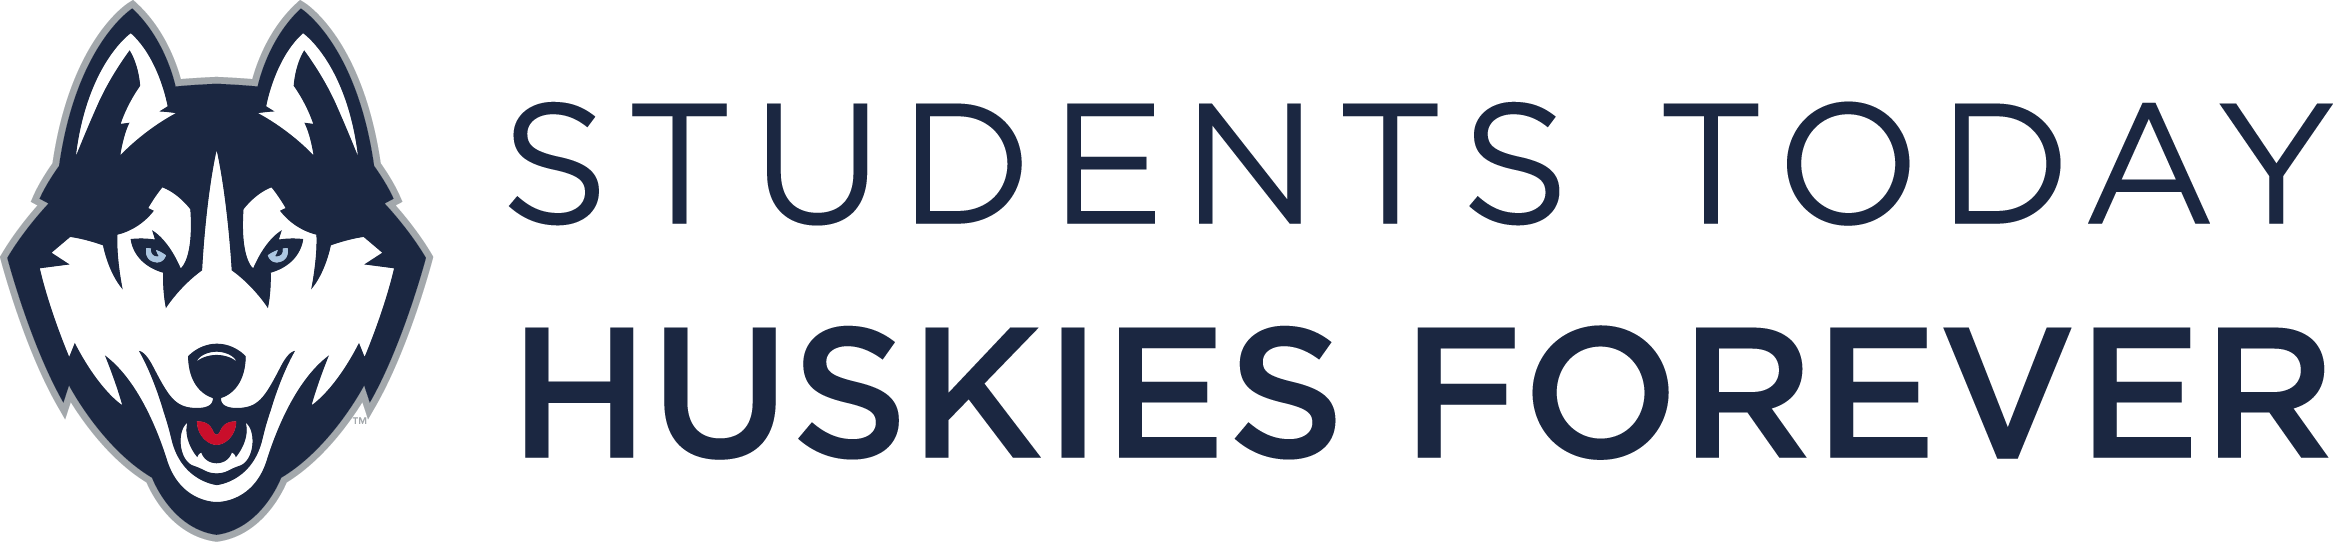 UConn motto: Students Today, Huskies Forever